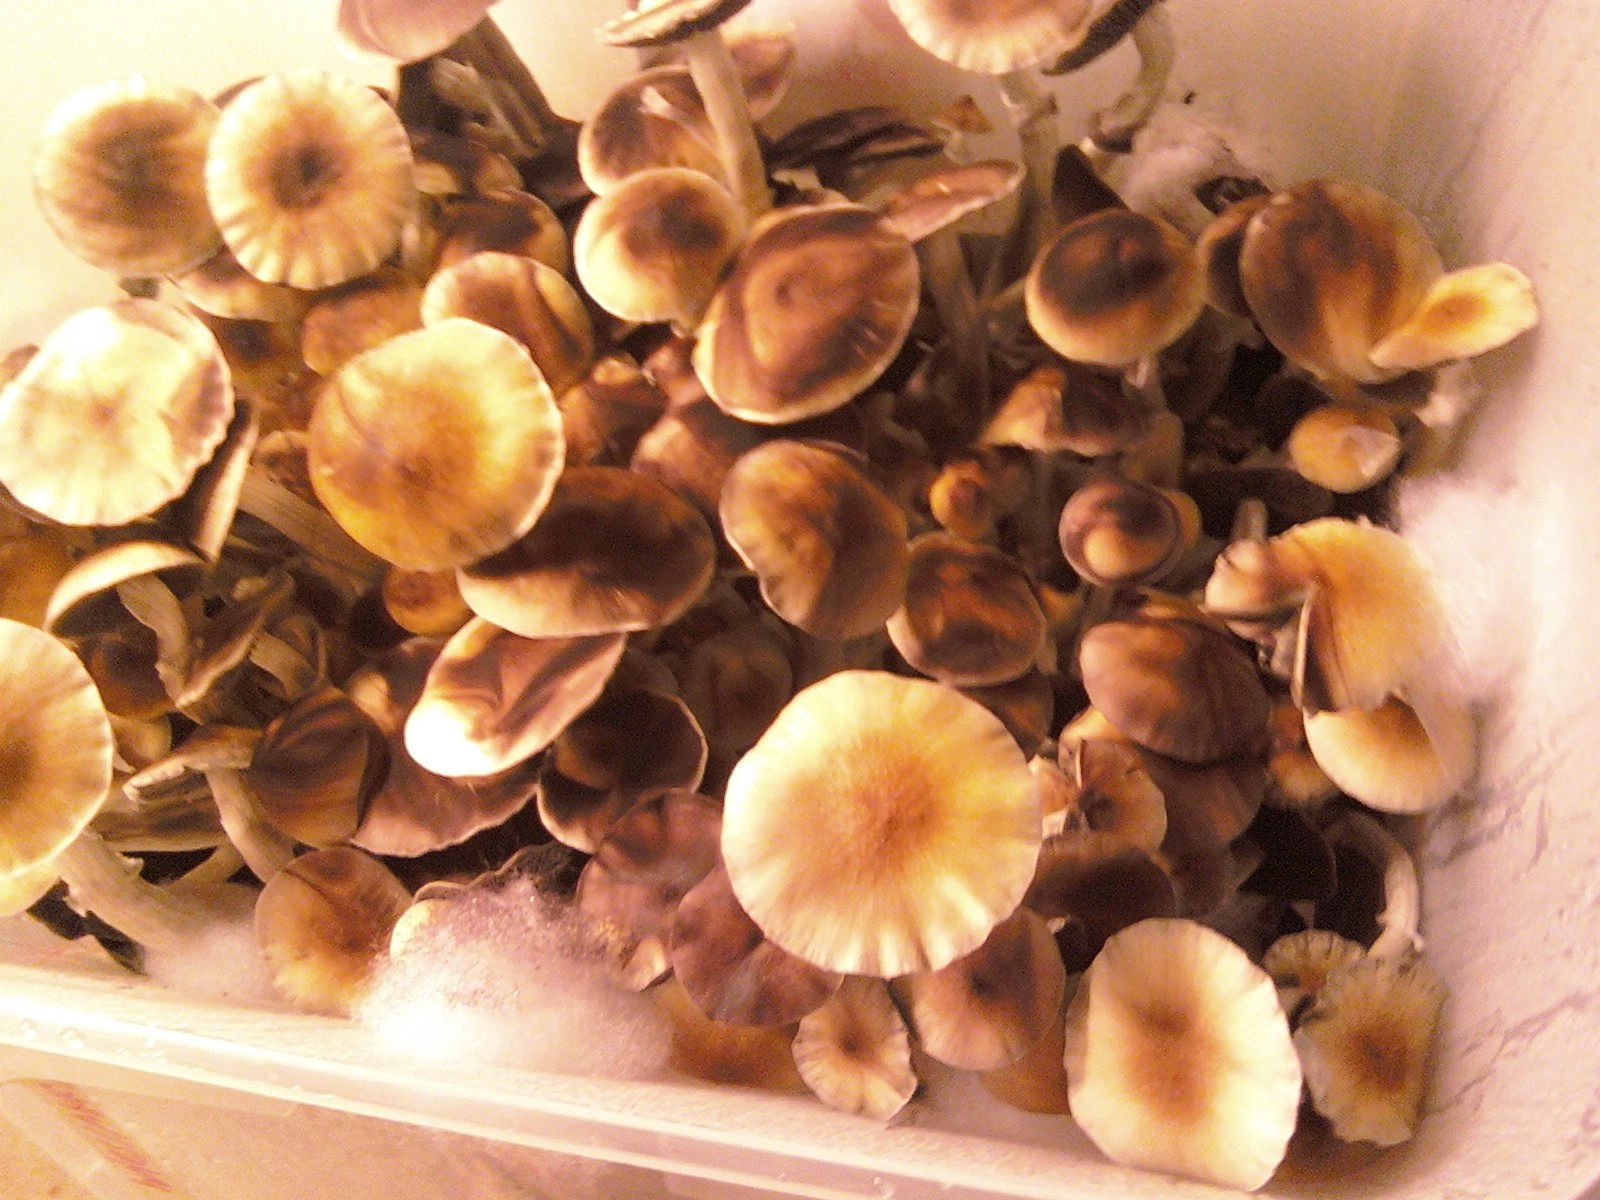 information about mushroom cultivation